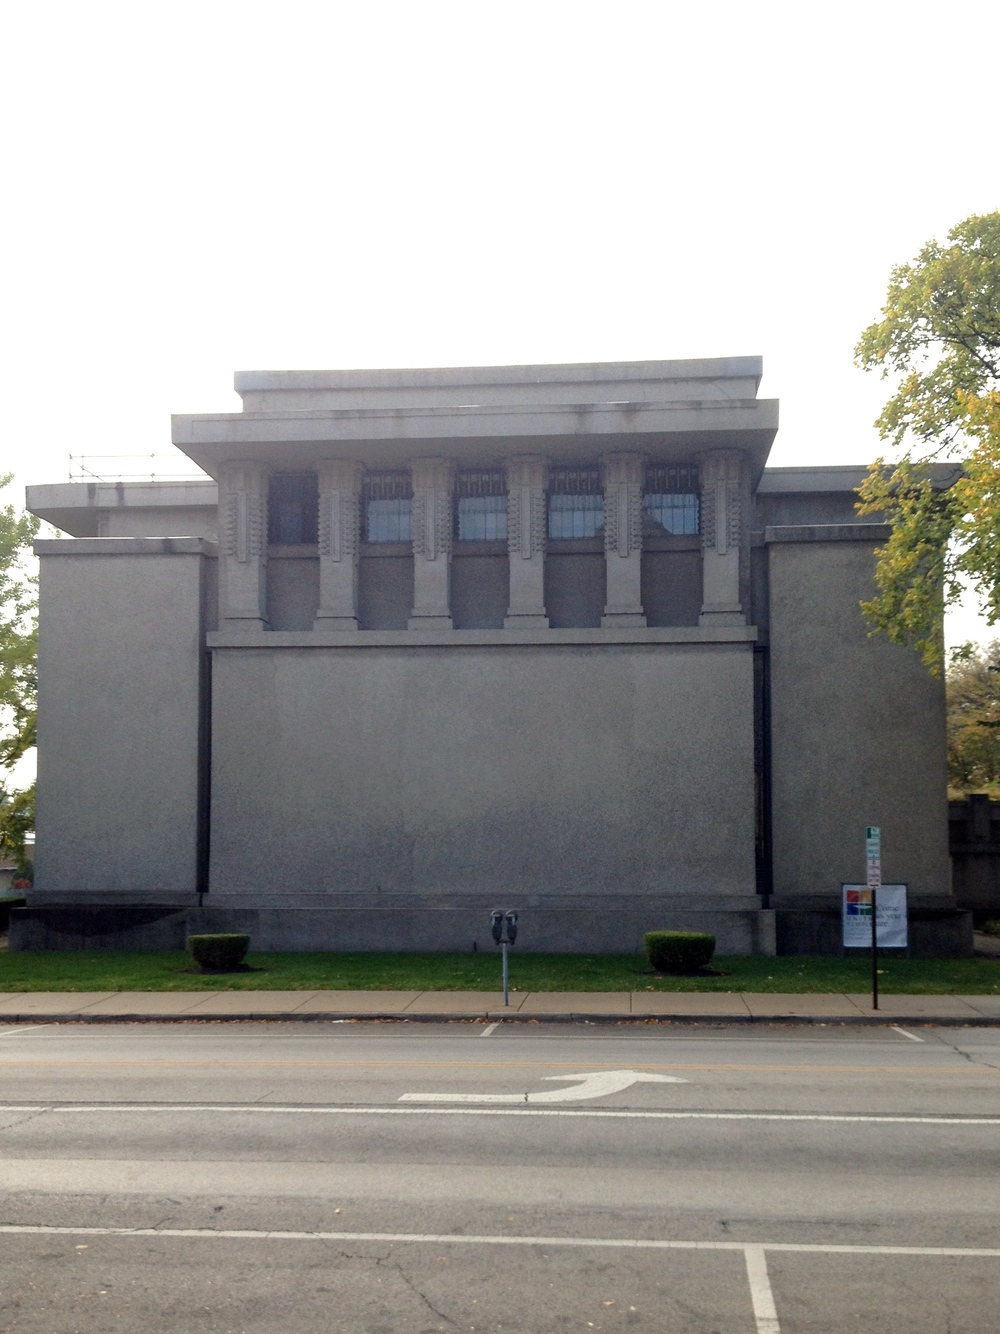 The famous Unity Temple in Oak Park